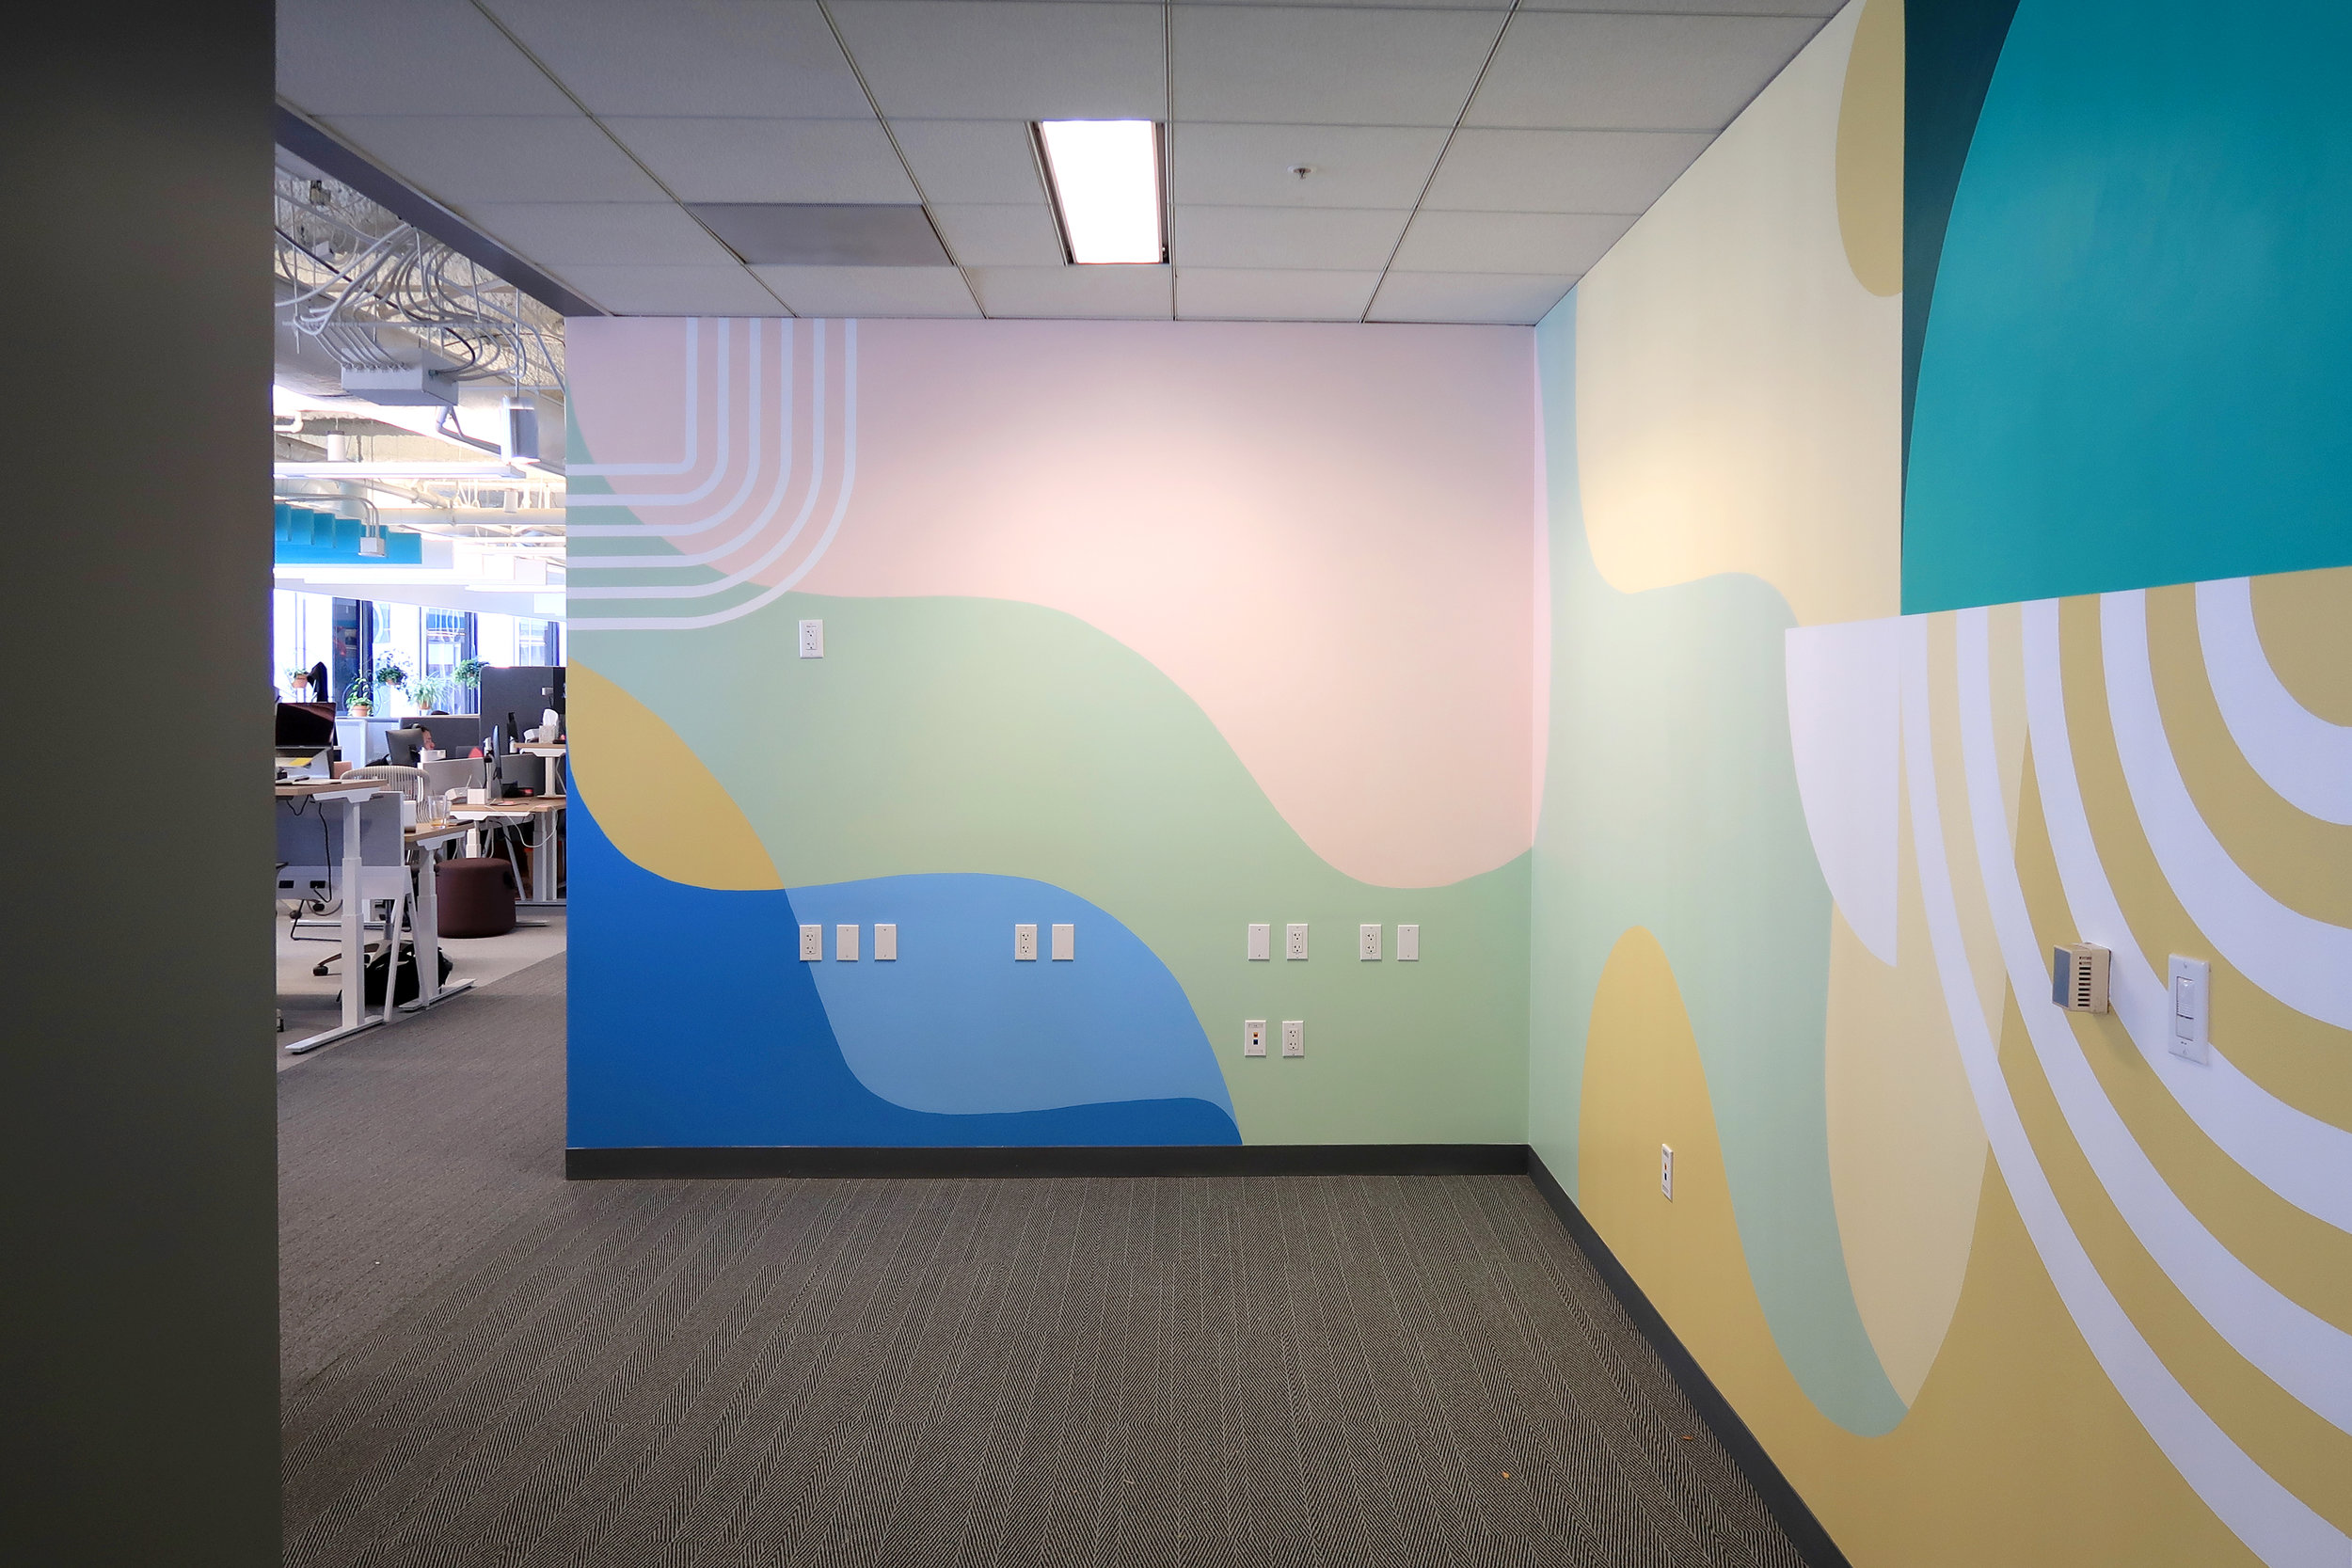 Event-mural-live-painting-san-francisco-segment-wall-and-wall-mural-company_003.jpg